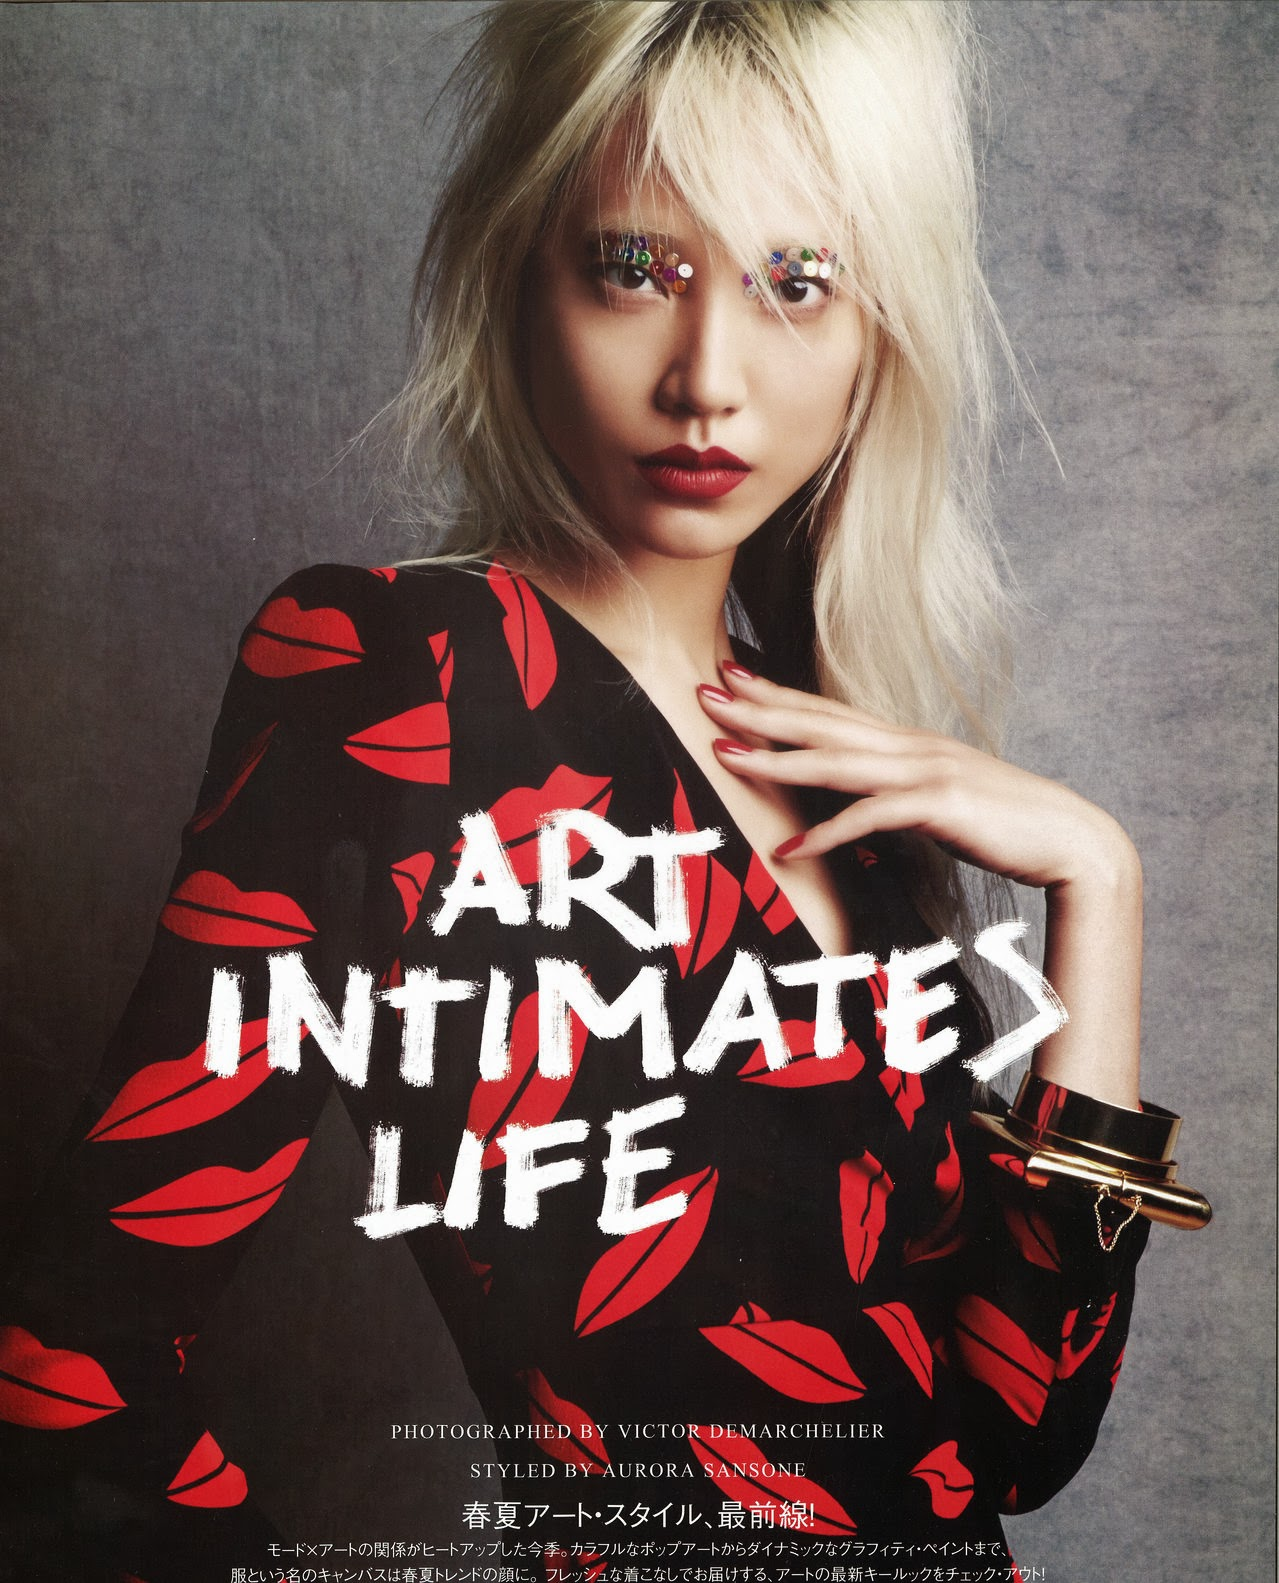 Soo Joo Park HQ Pictures Art Intimates Life Photoshoot April 2014 By Victor Demarchelier